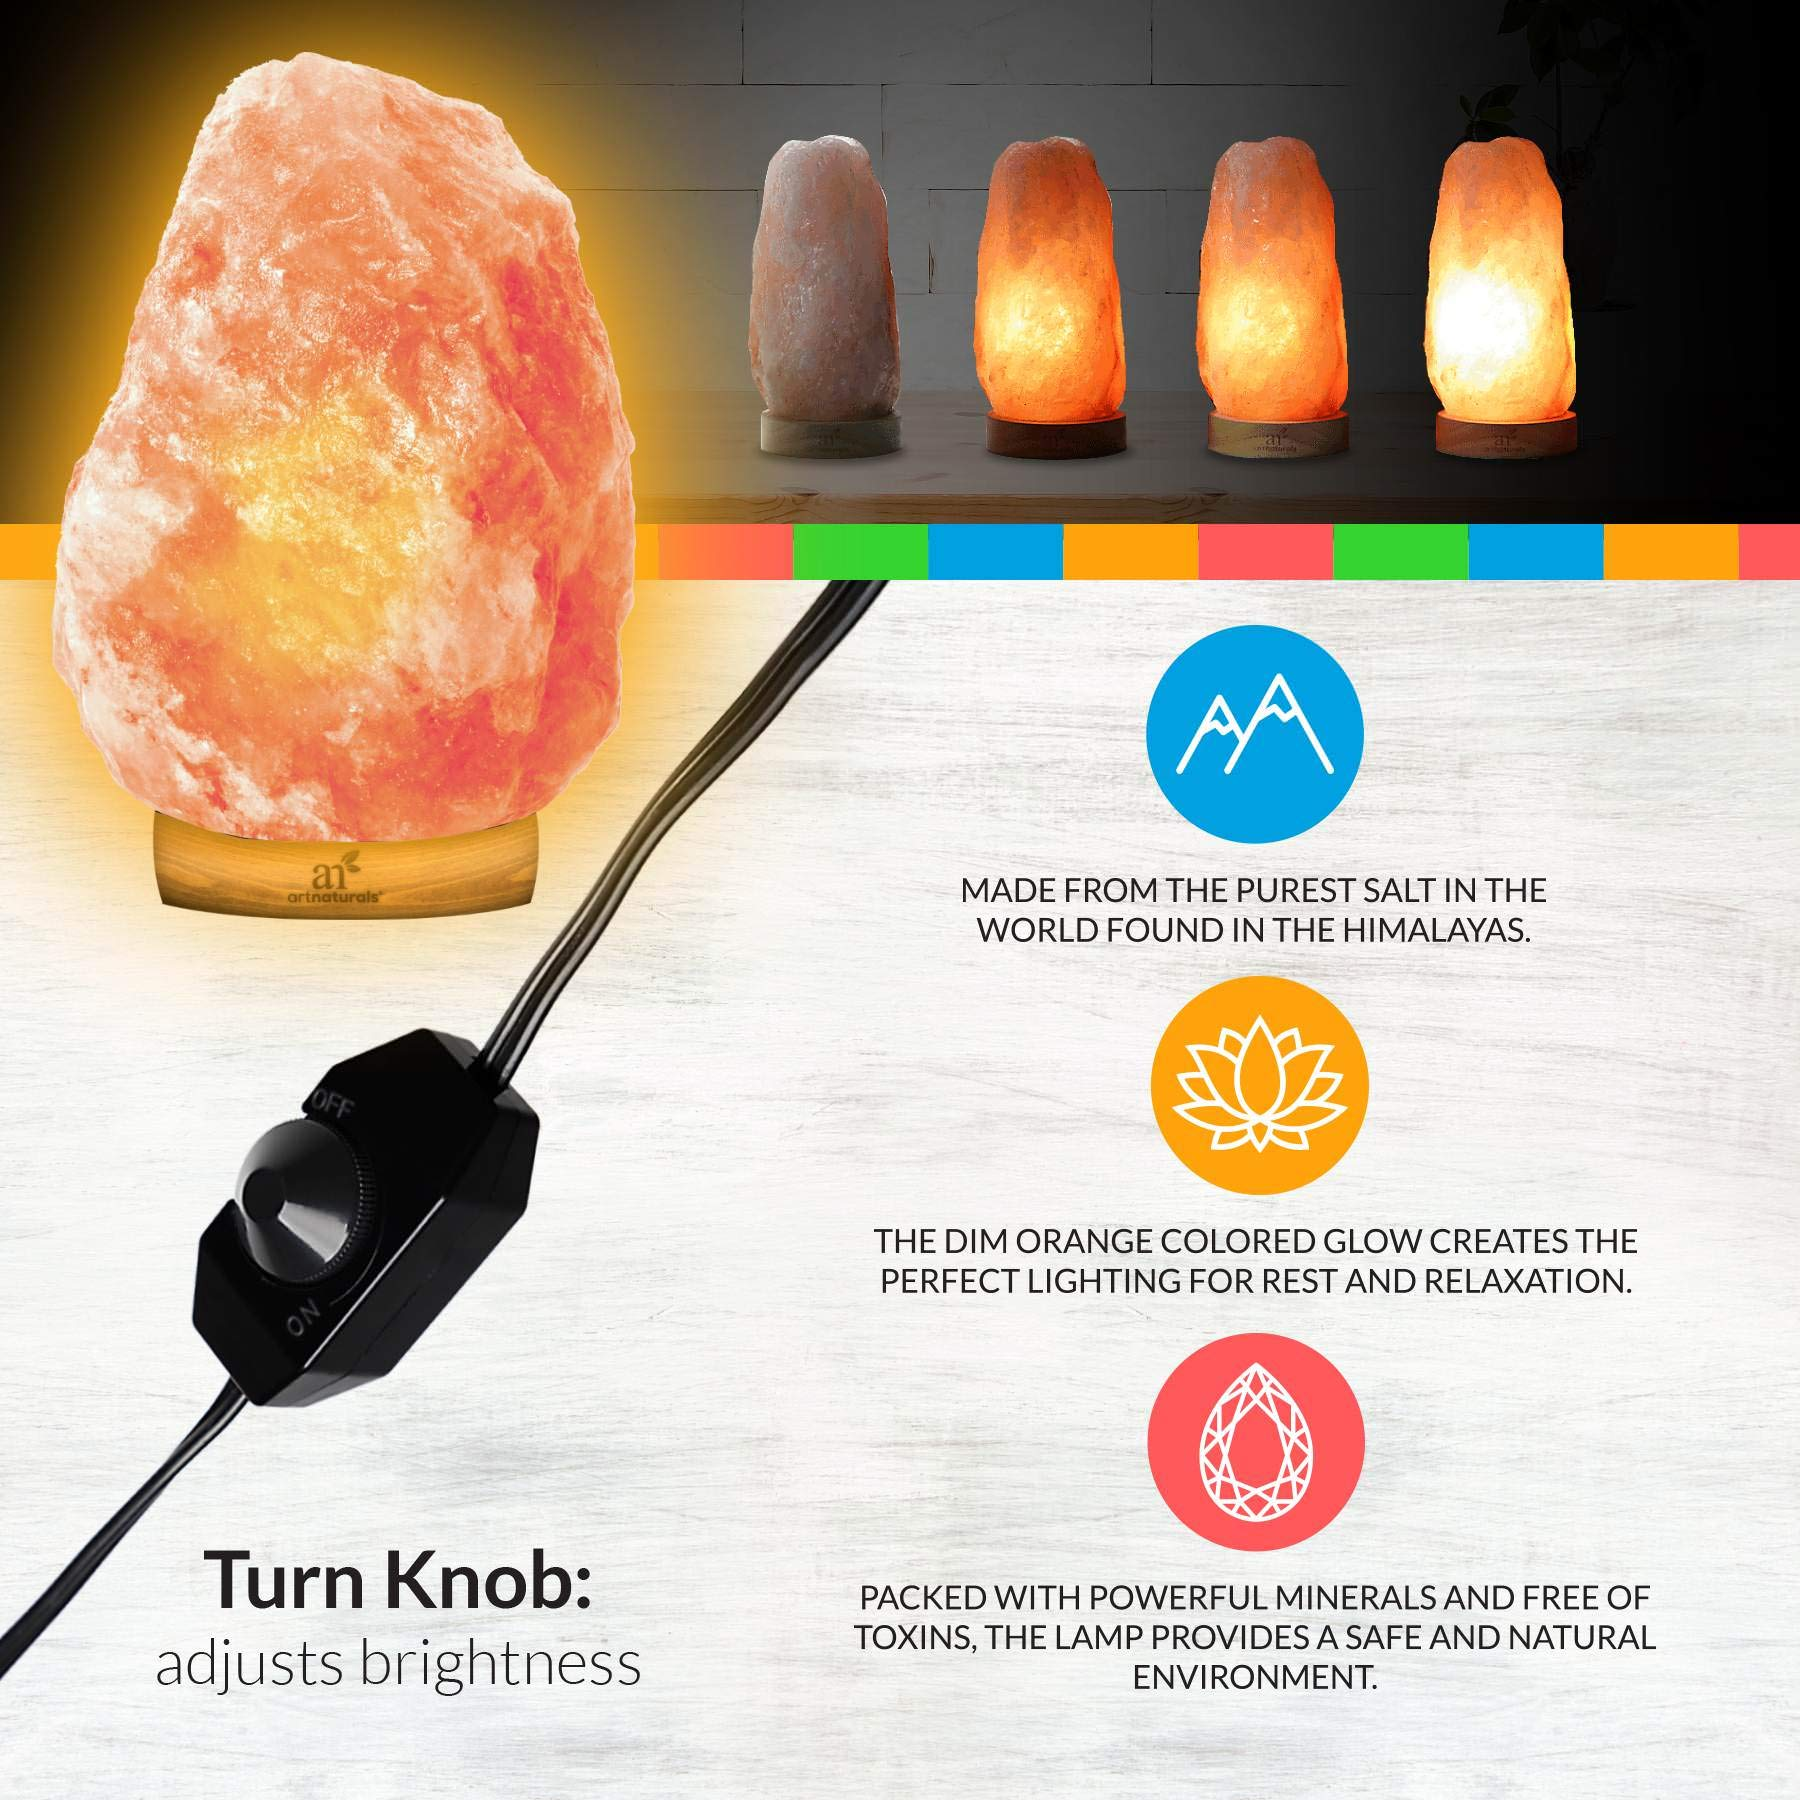 ArtNaturals Himalayan Rock Salt Lamp - Hand Carved Pink Crystal from Pure Salt in the Himalayas - for Rest, Relaxation and Energy - Real Wooden Base by ArtNaturals (Image #2)